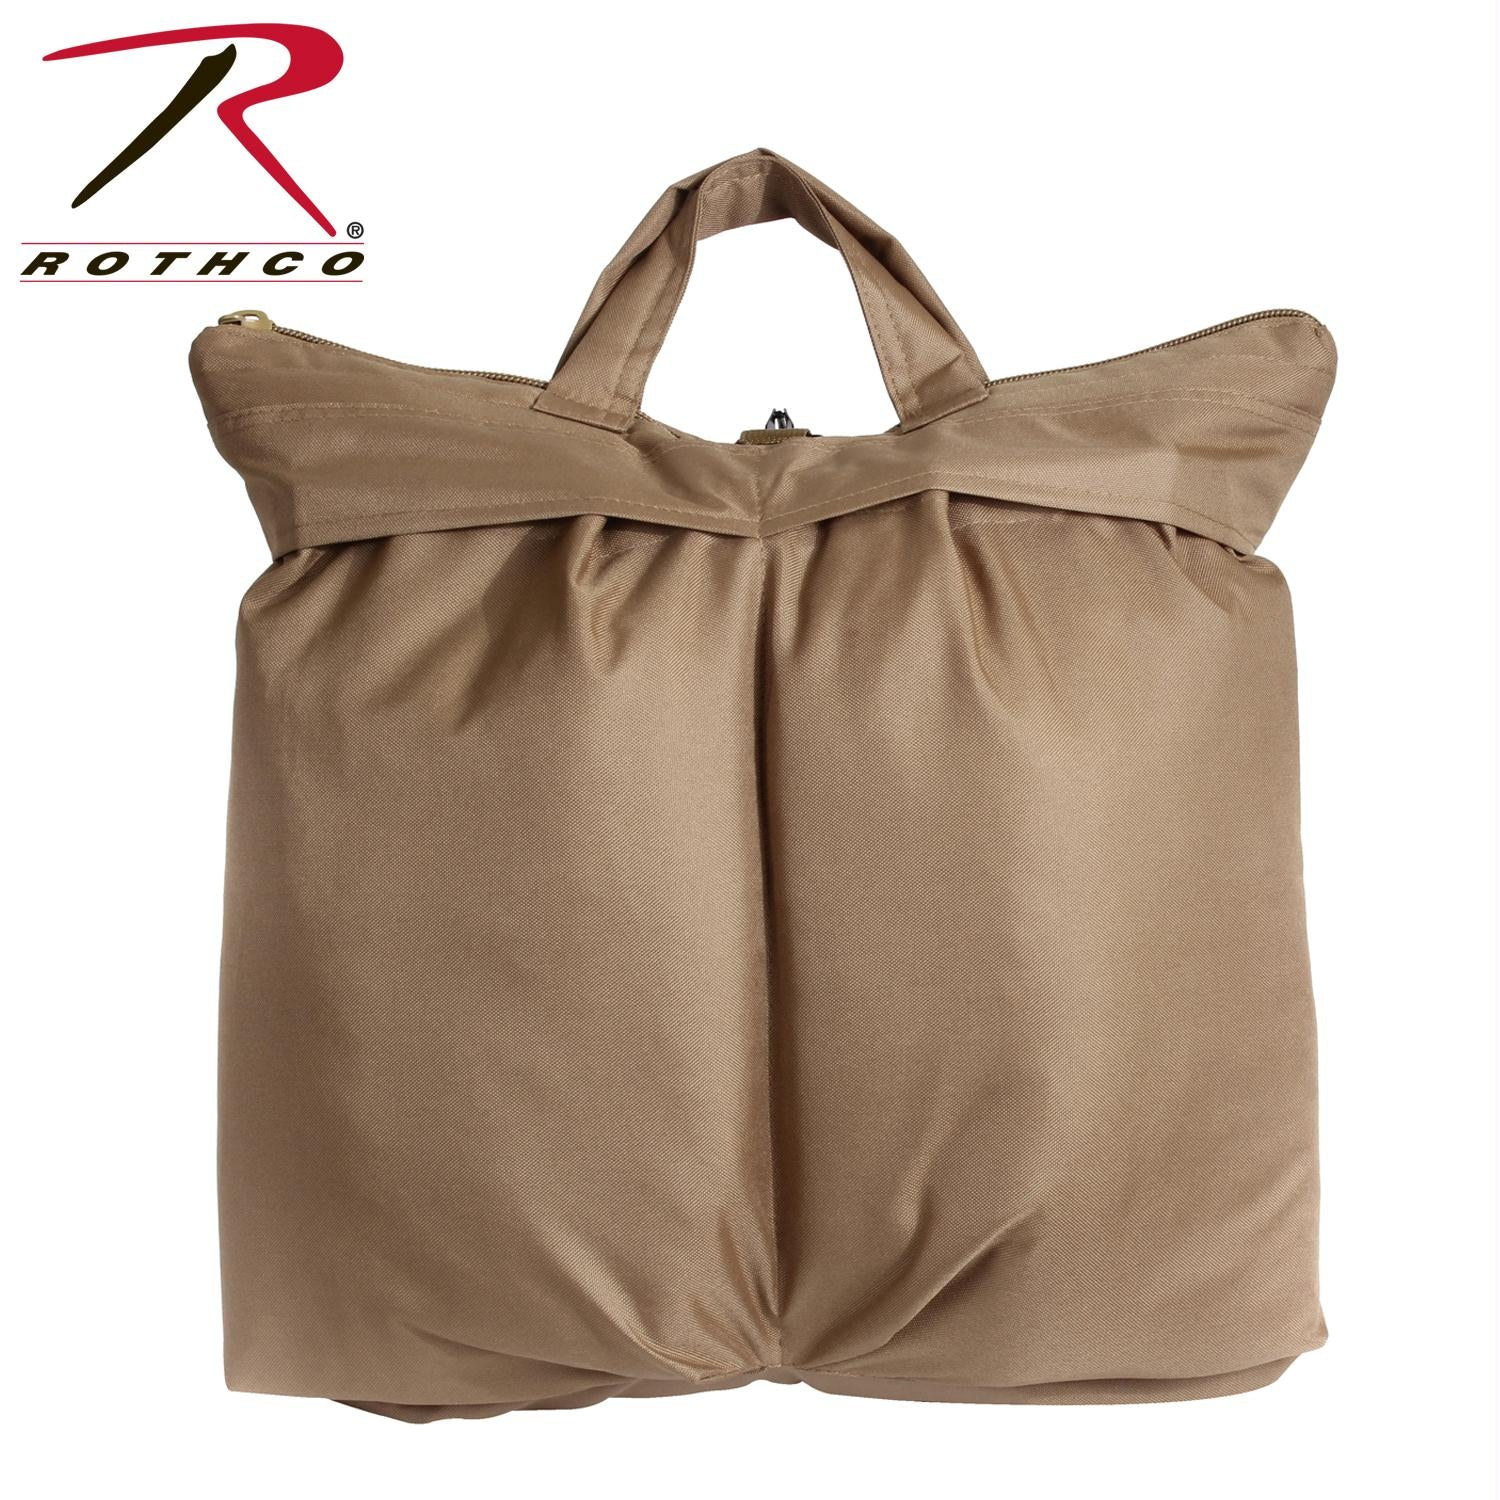 Rothco G.I. Type Flyers Helmet Bags - Coyote Brown